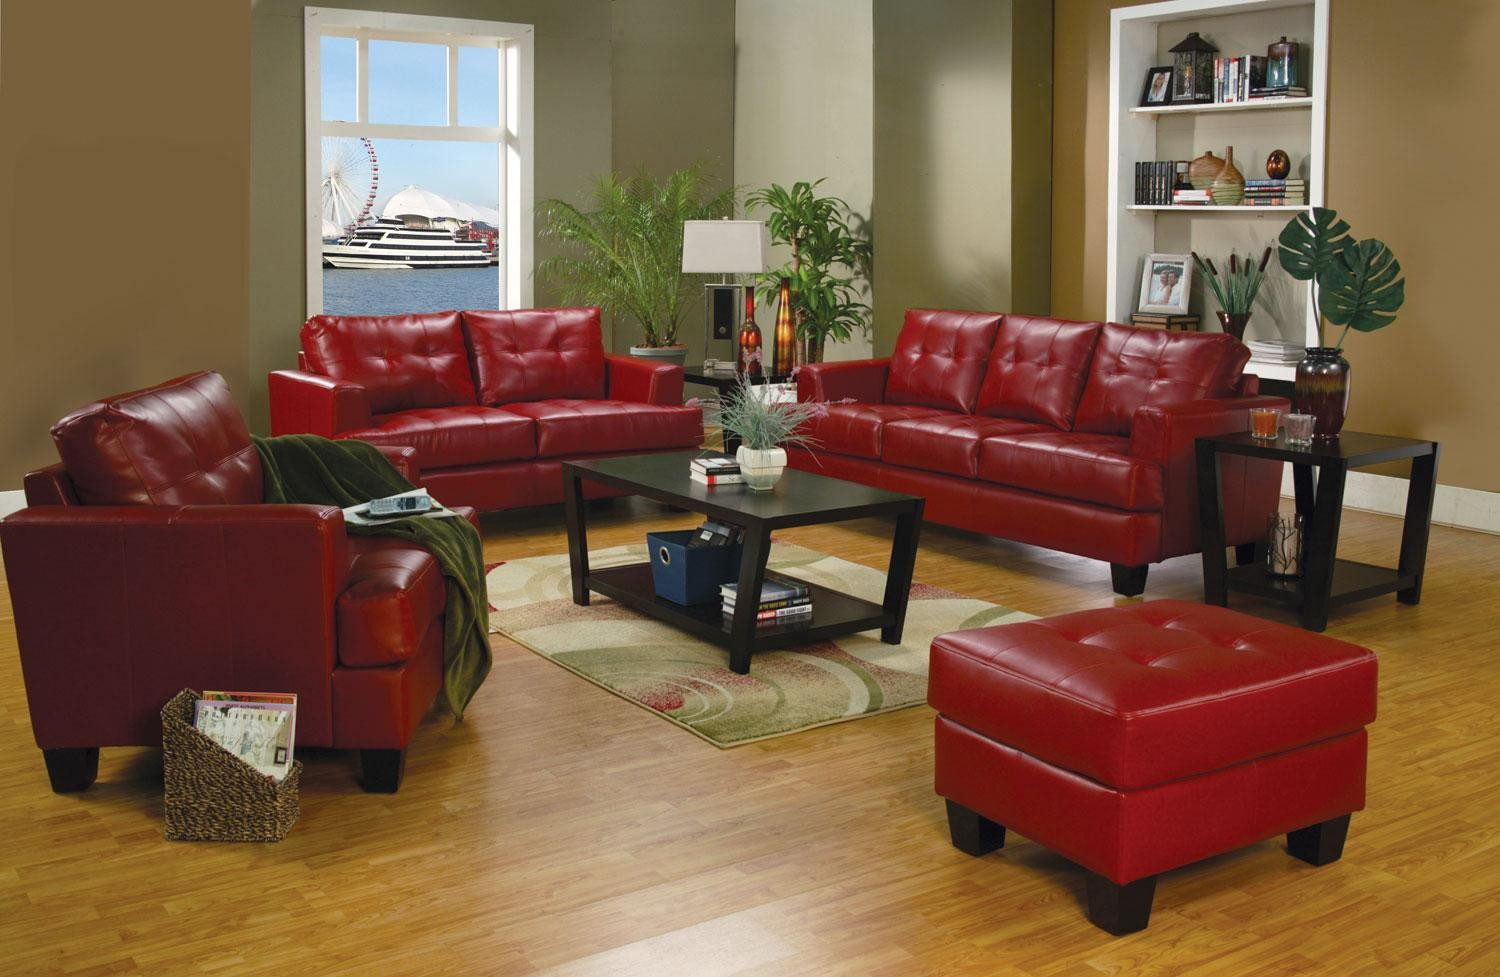 samuel red leather living room set 501831 from coaster 501831 coleman furniture. Black Bedroom Furniture Sets. Home Design Ideas